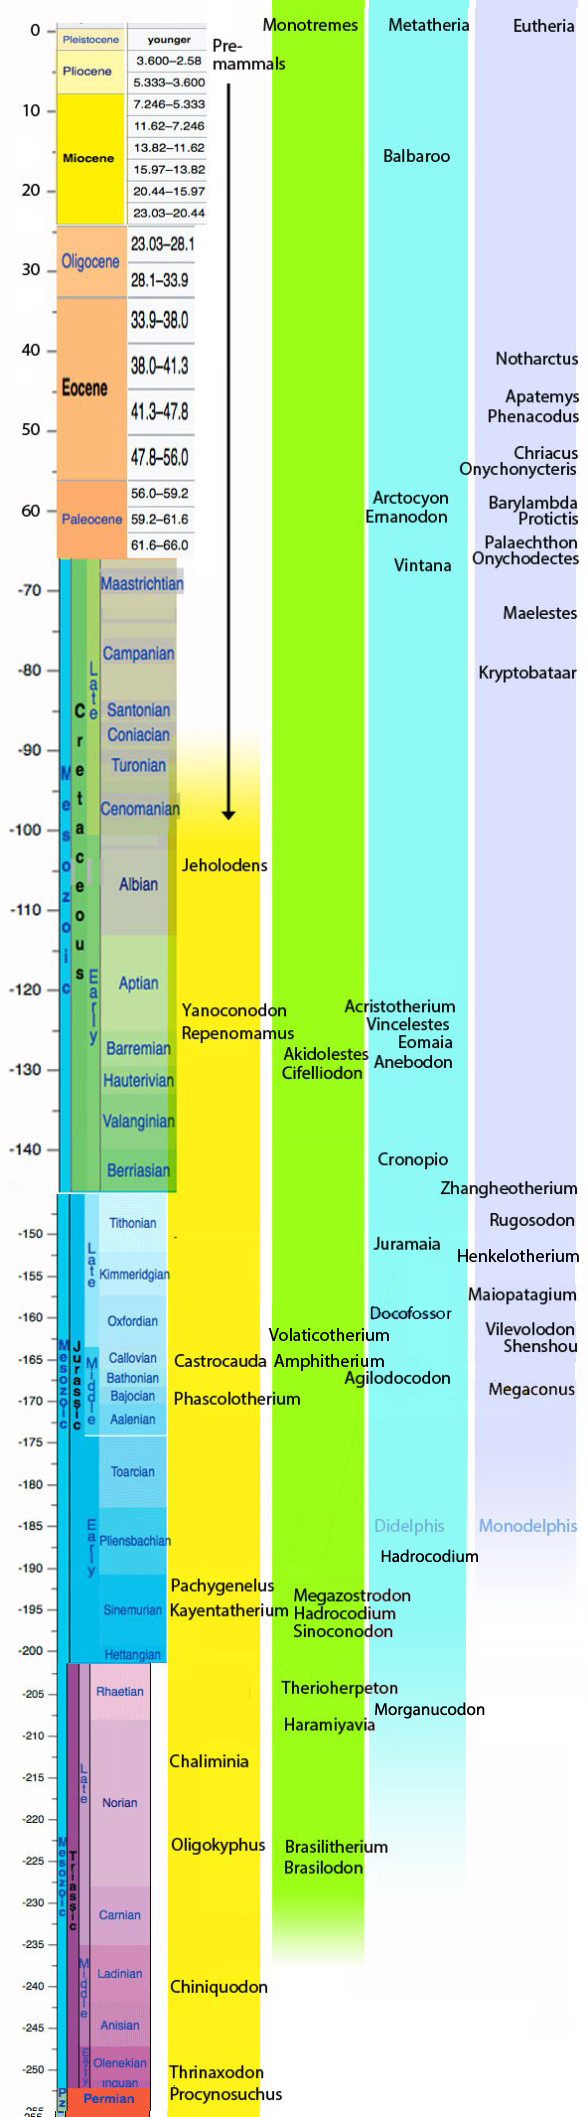 Figure 1. Select basal cynodonts and mammals set chronologically. The divergence times for placentals (Eutheria), marsupials (Metatheria) and monotremes (Mammalia) are estimated here.